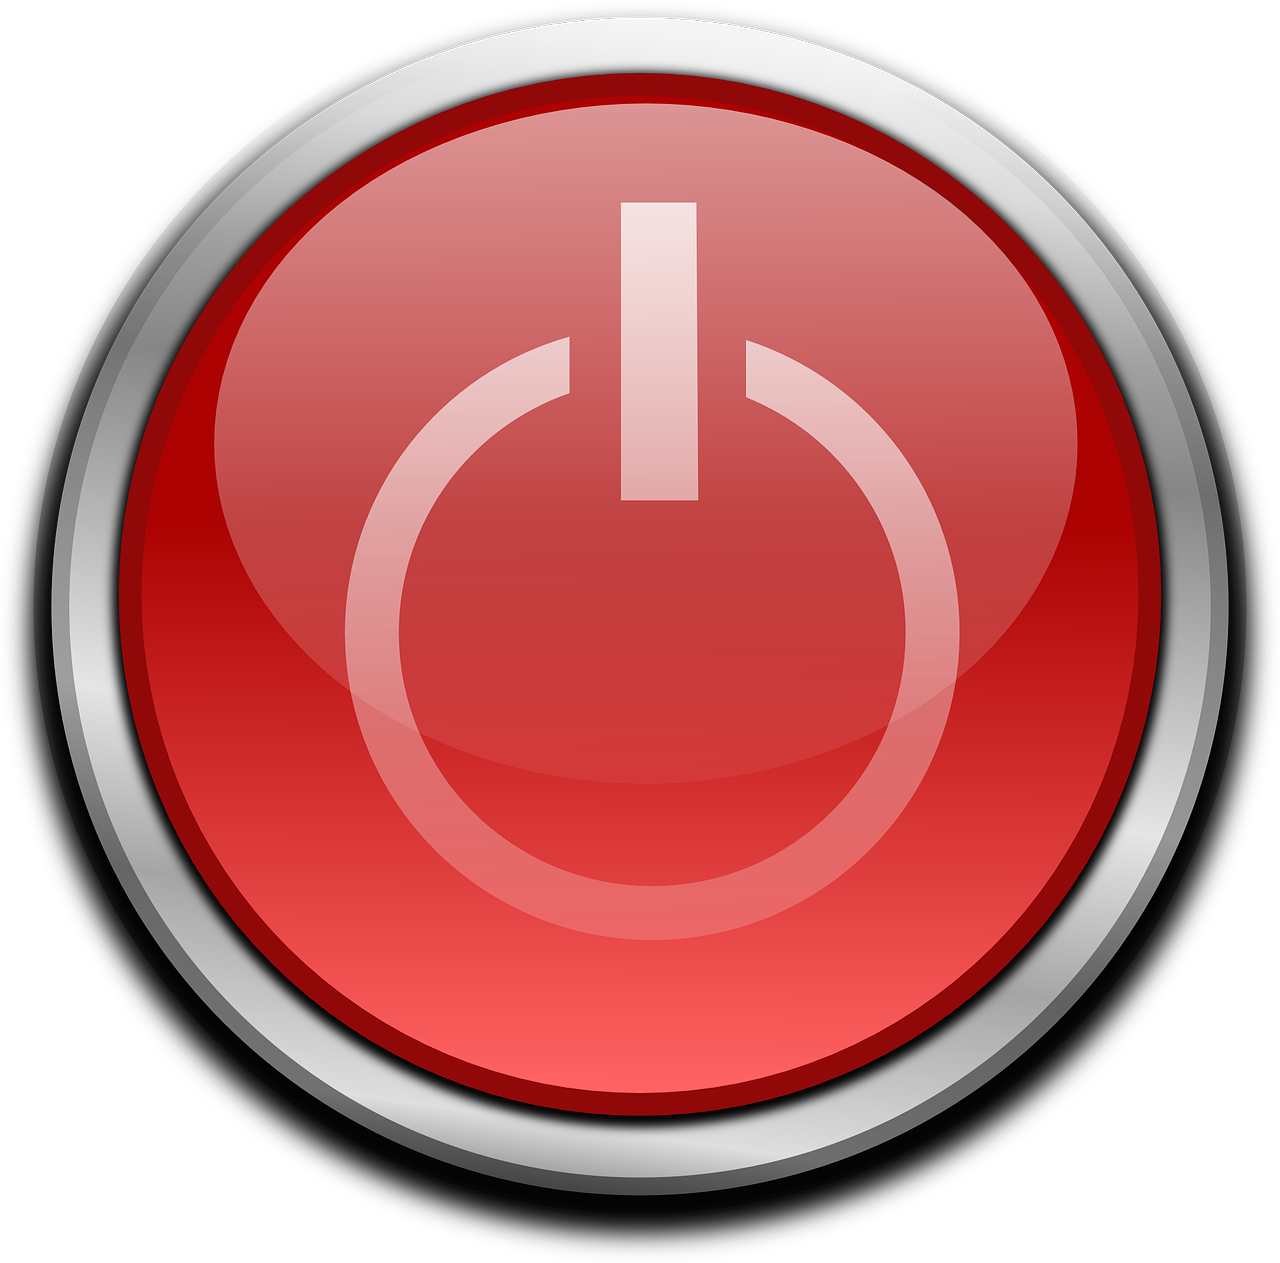 button-160595_1280.png